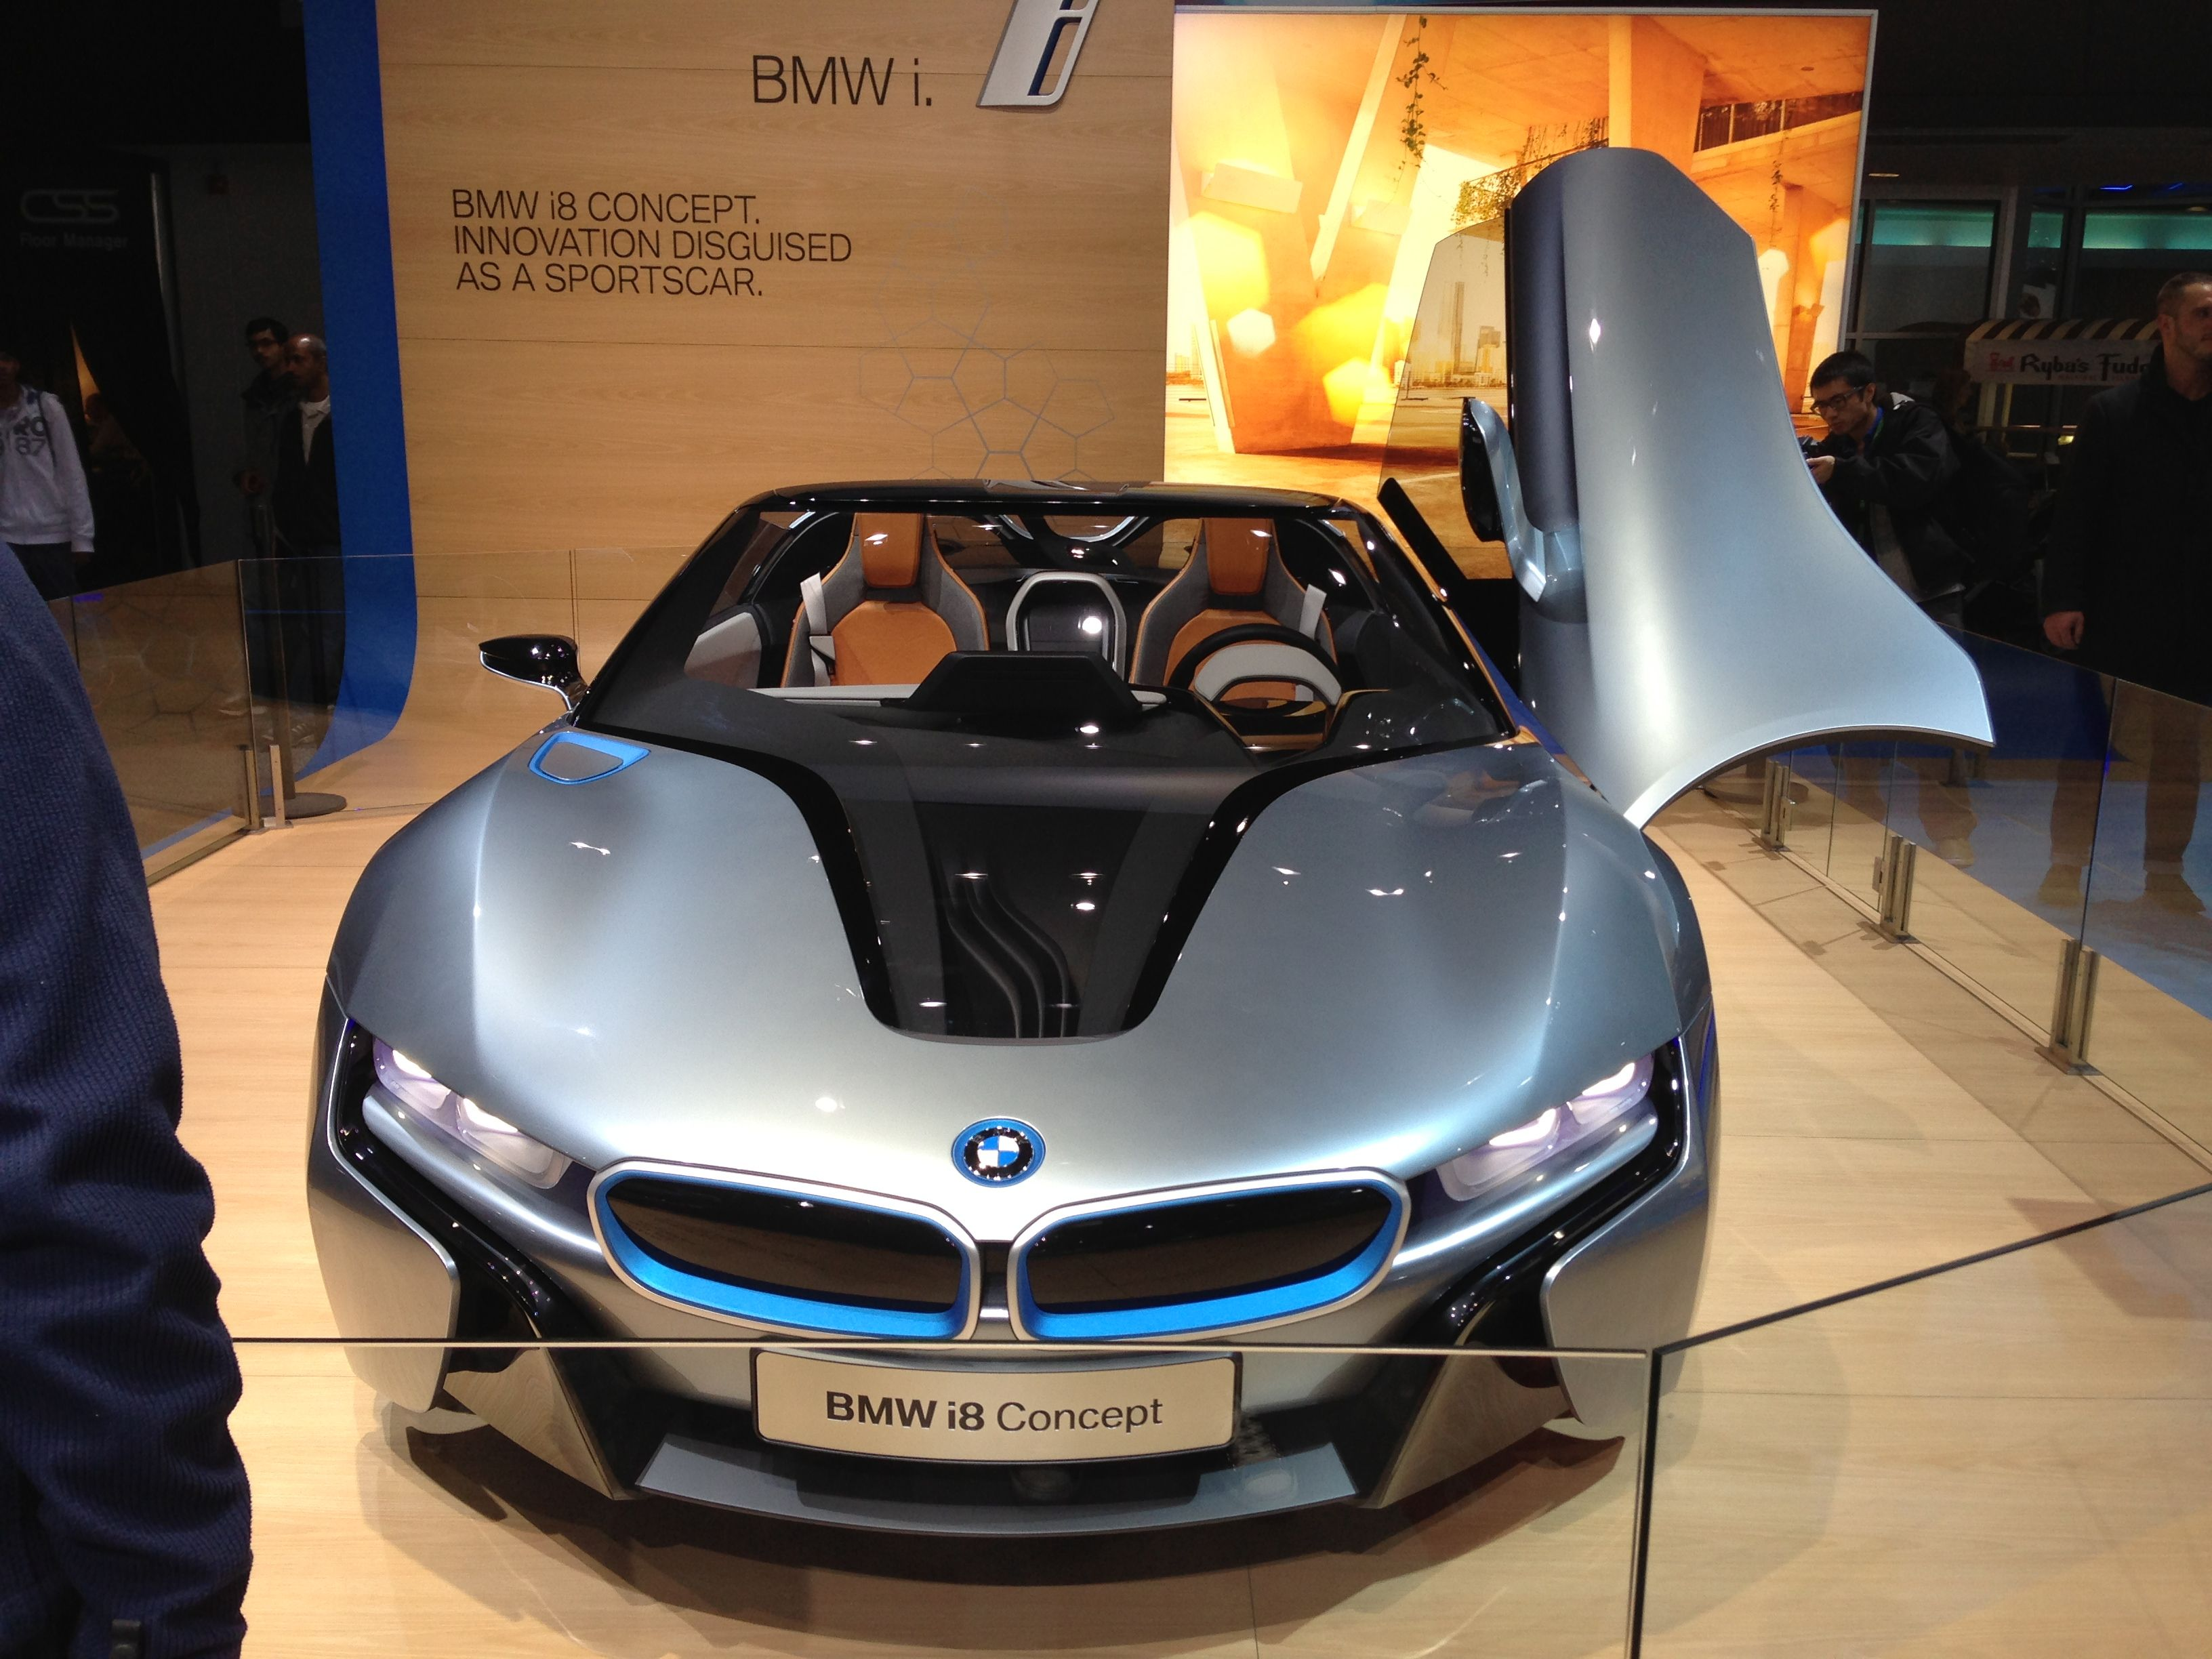 Name brand items for less! (With images) Bmw i8, Sports